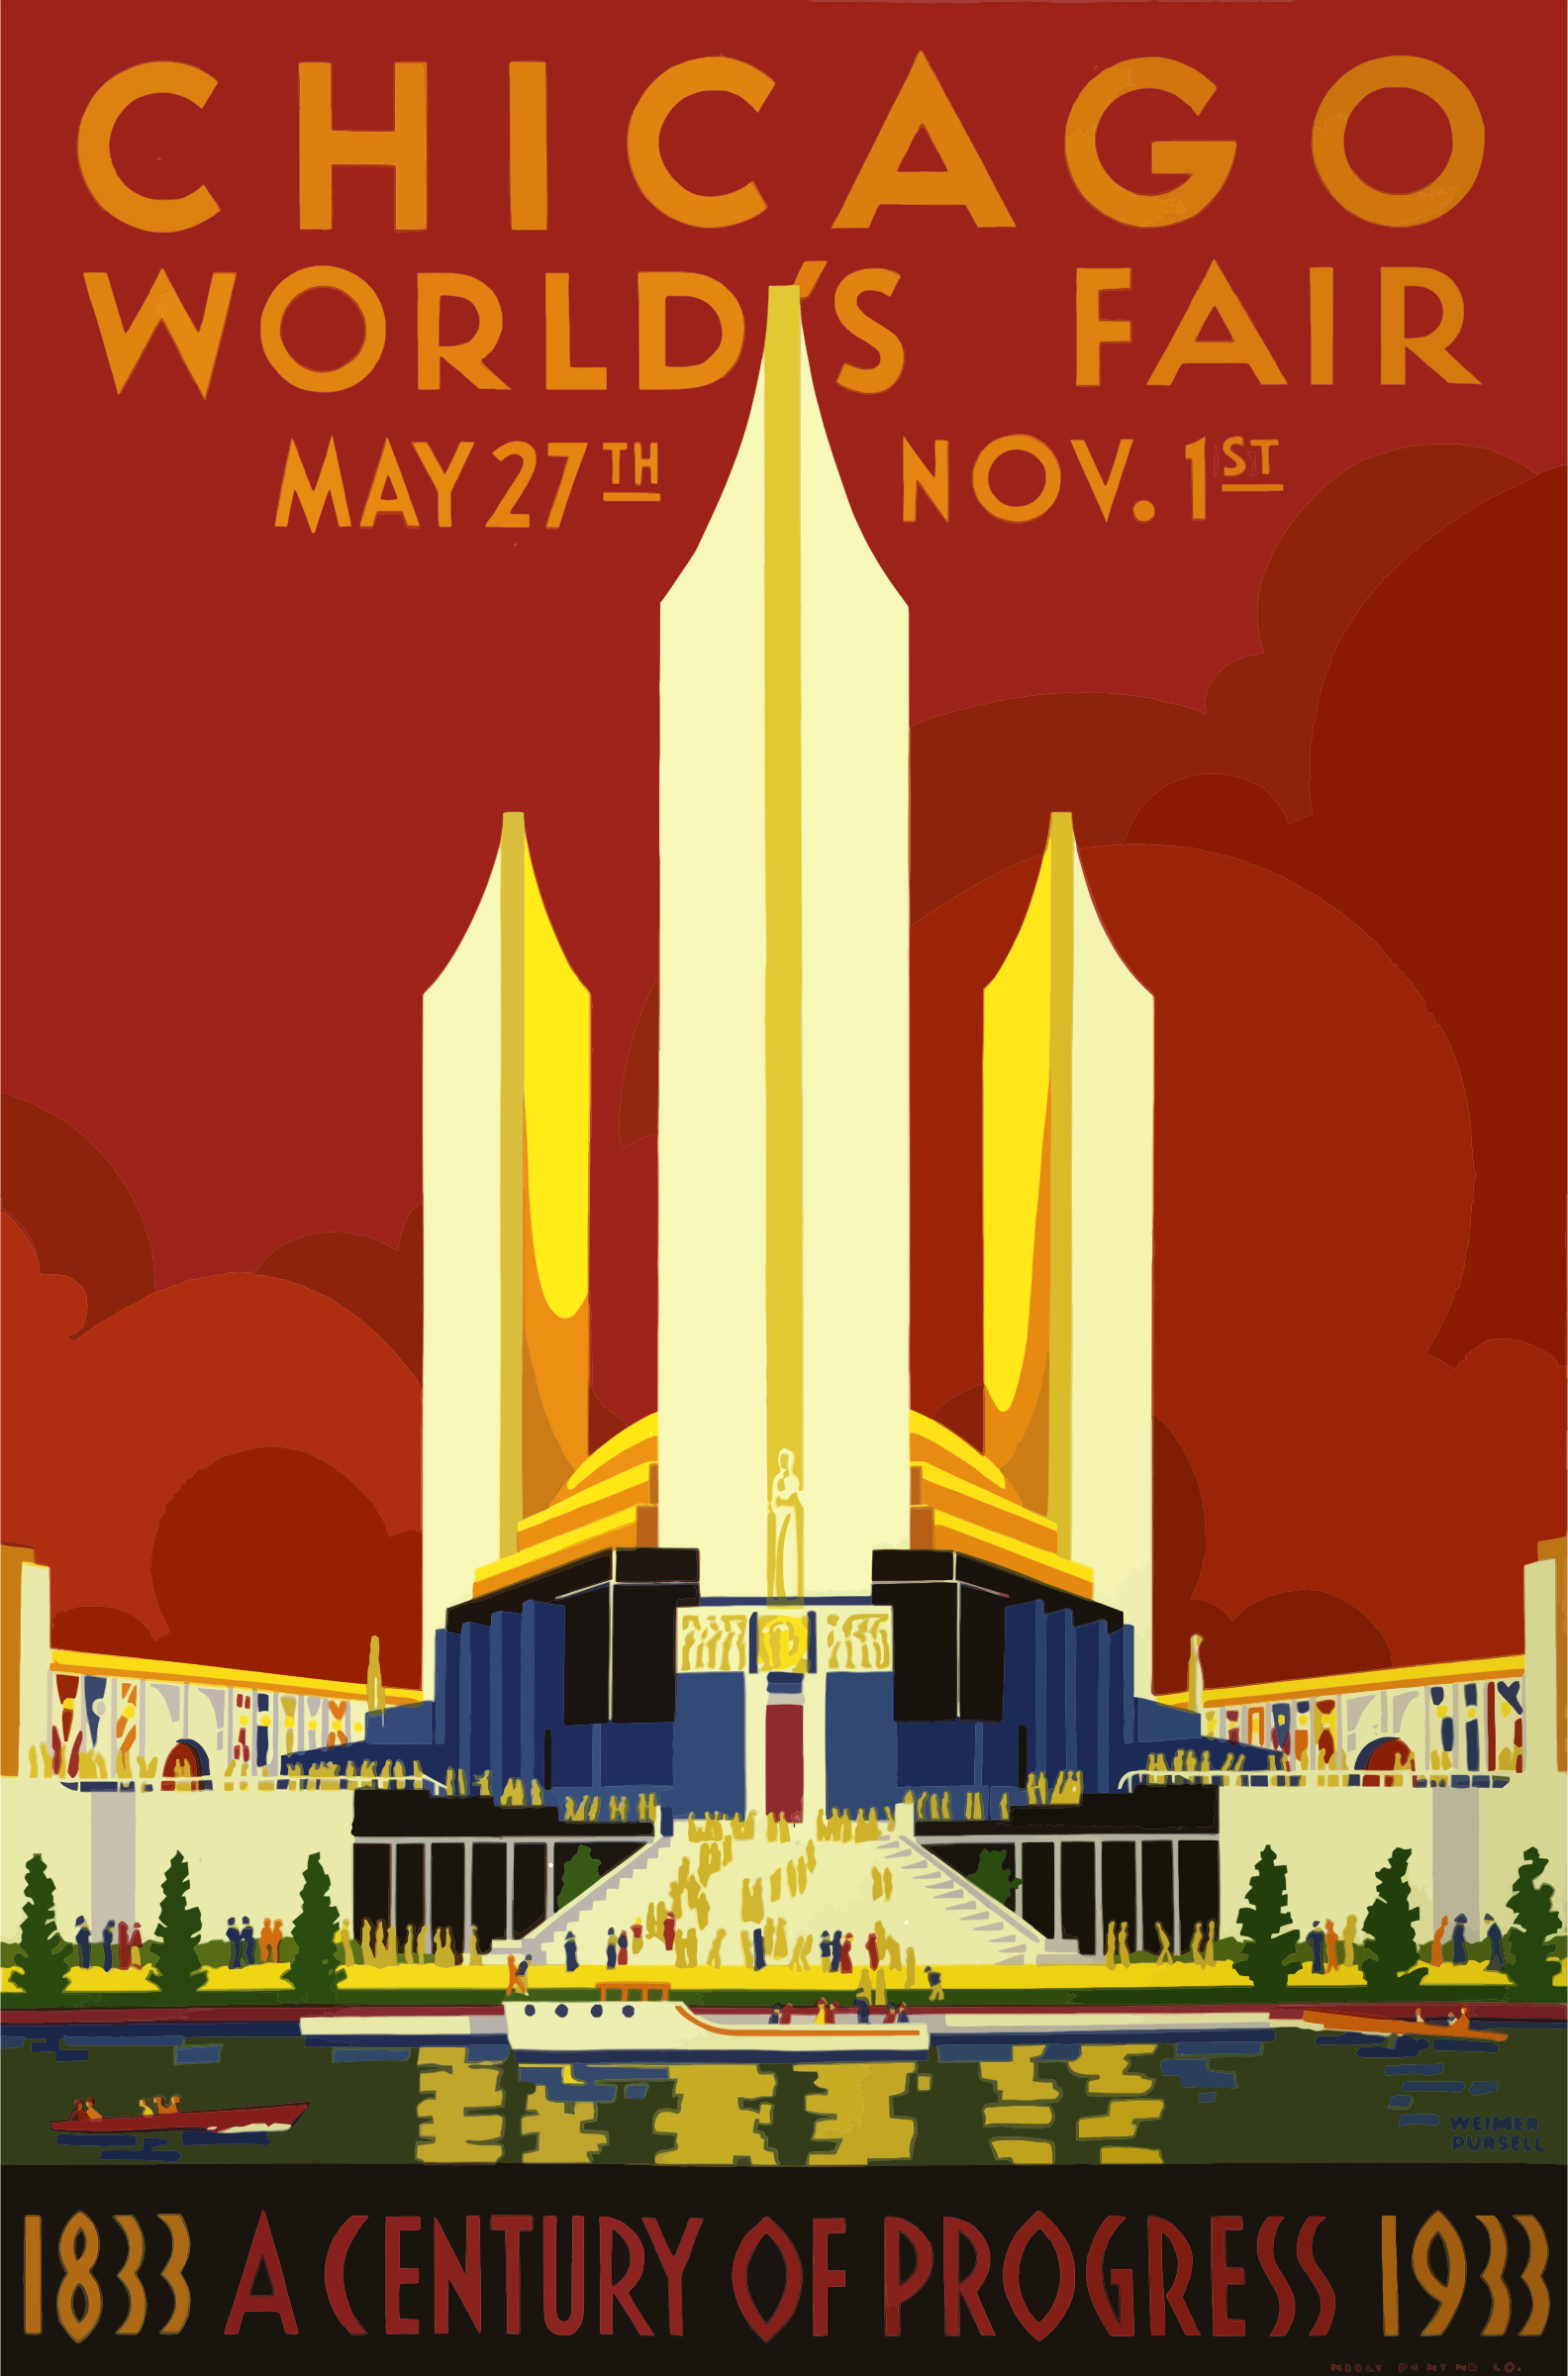 Vintage Travel Poster Chicago Worlds Fair 1933 by GDJ